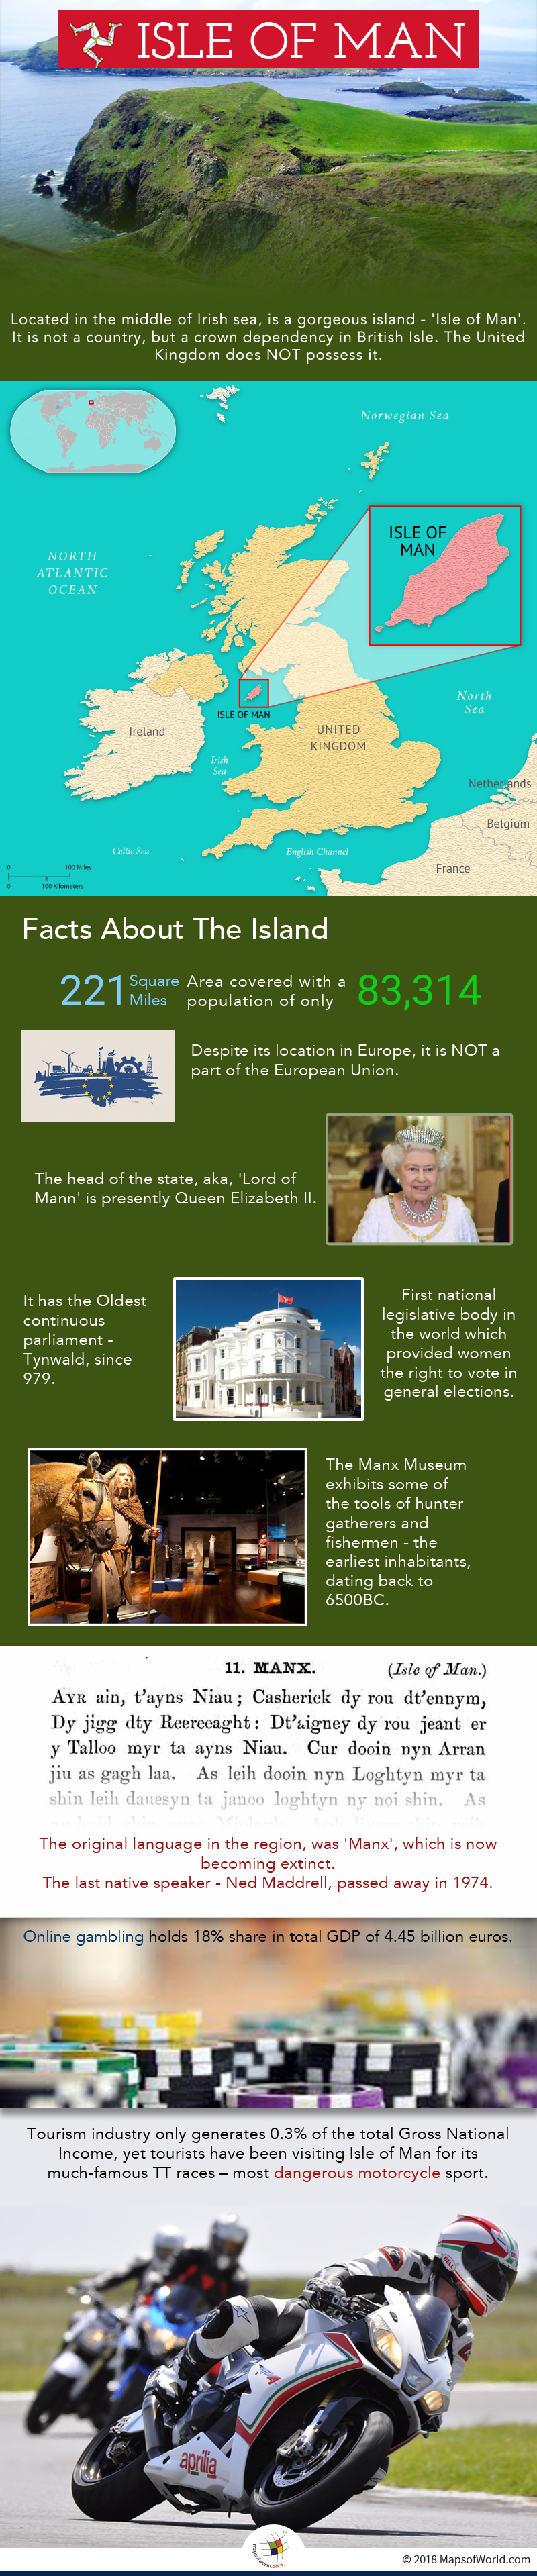 Infographic elaborating the facts of Isle of Man